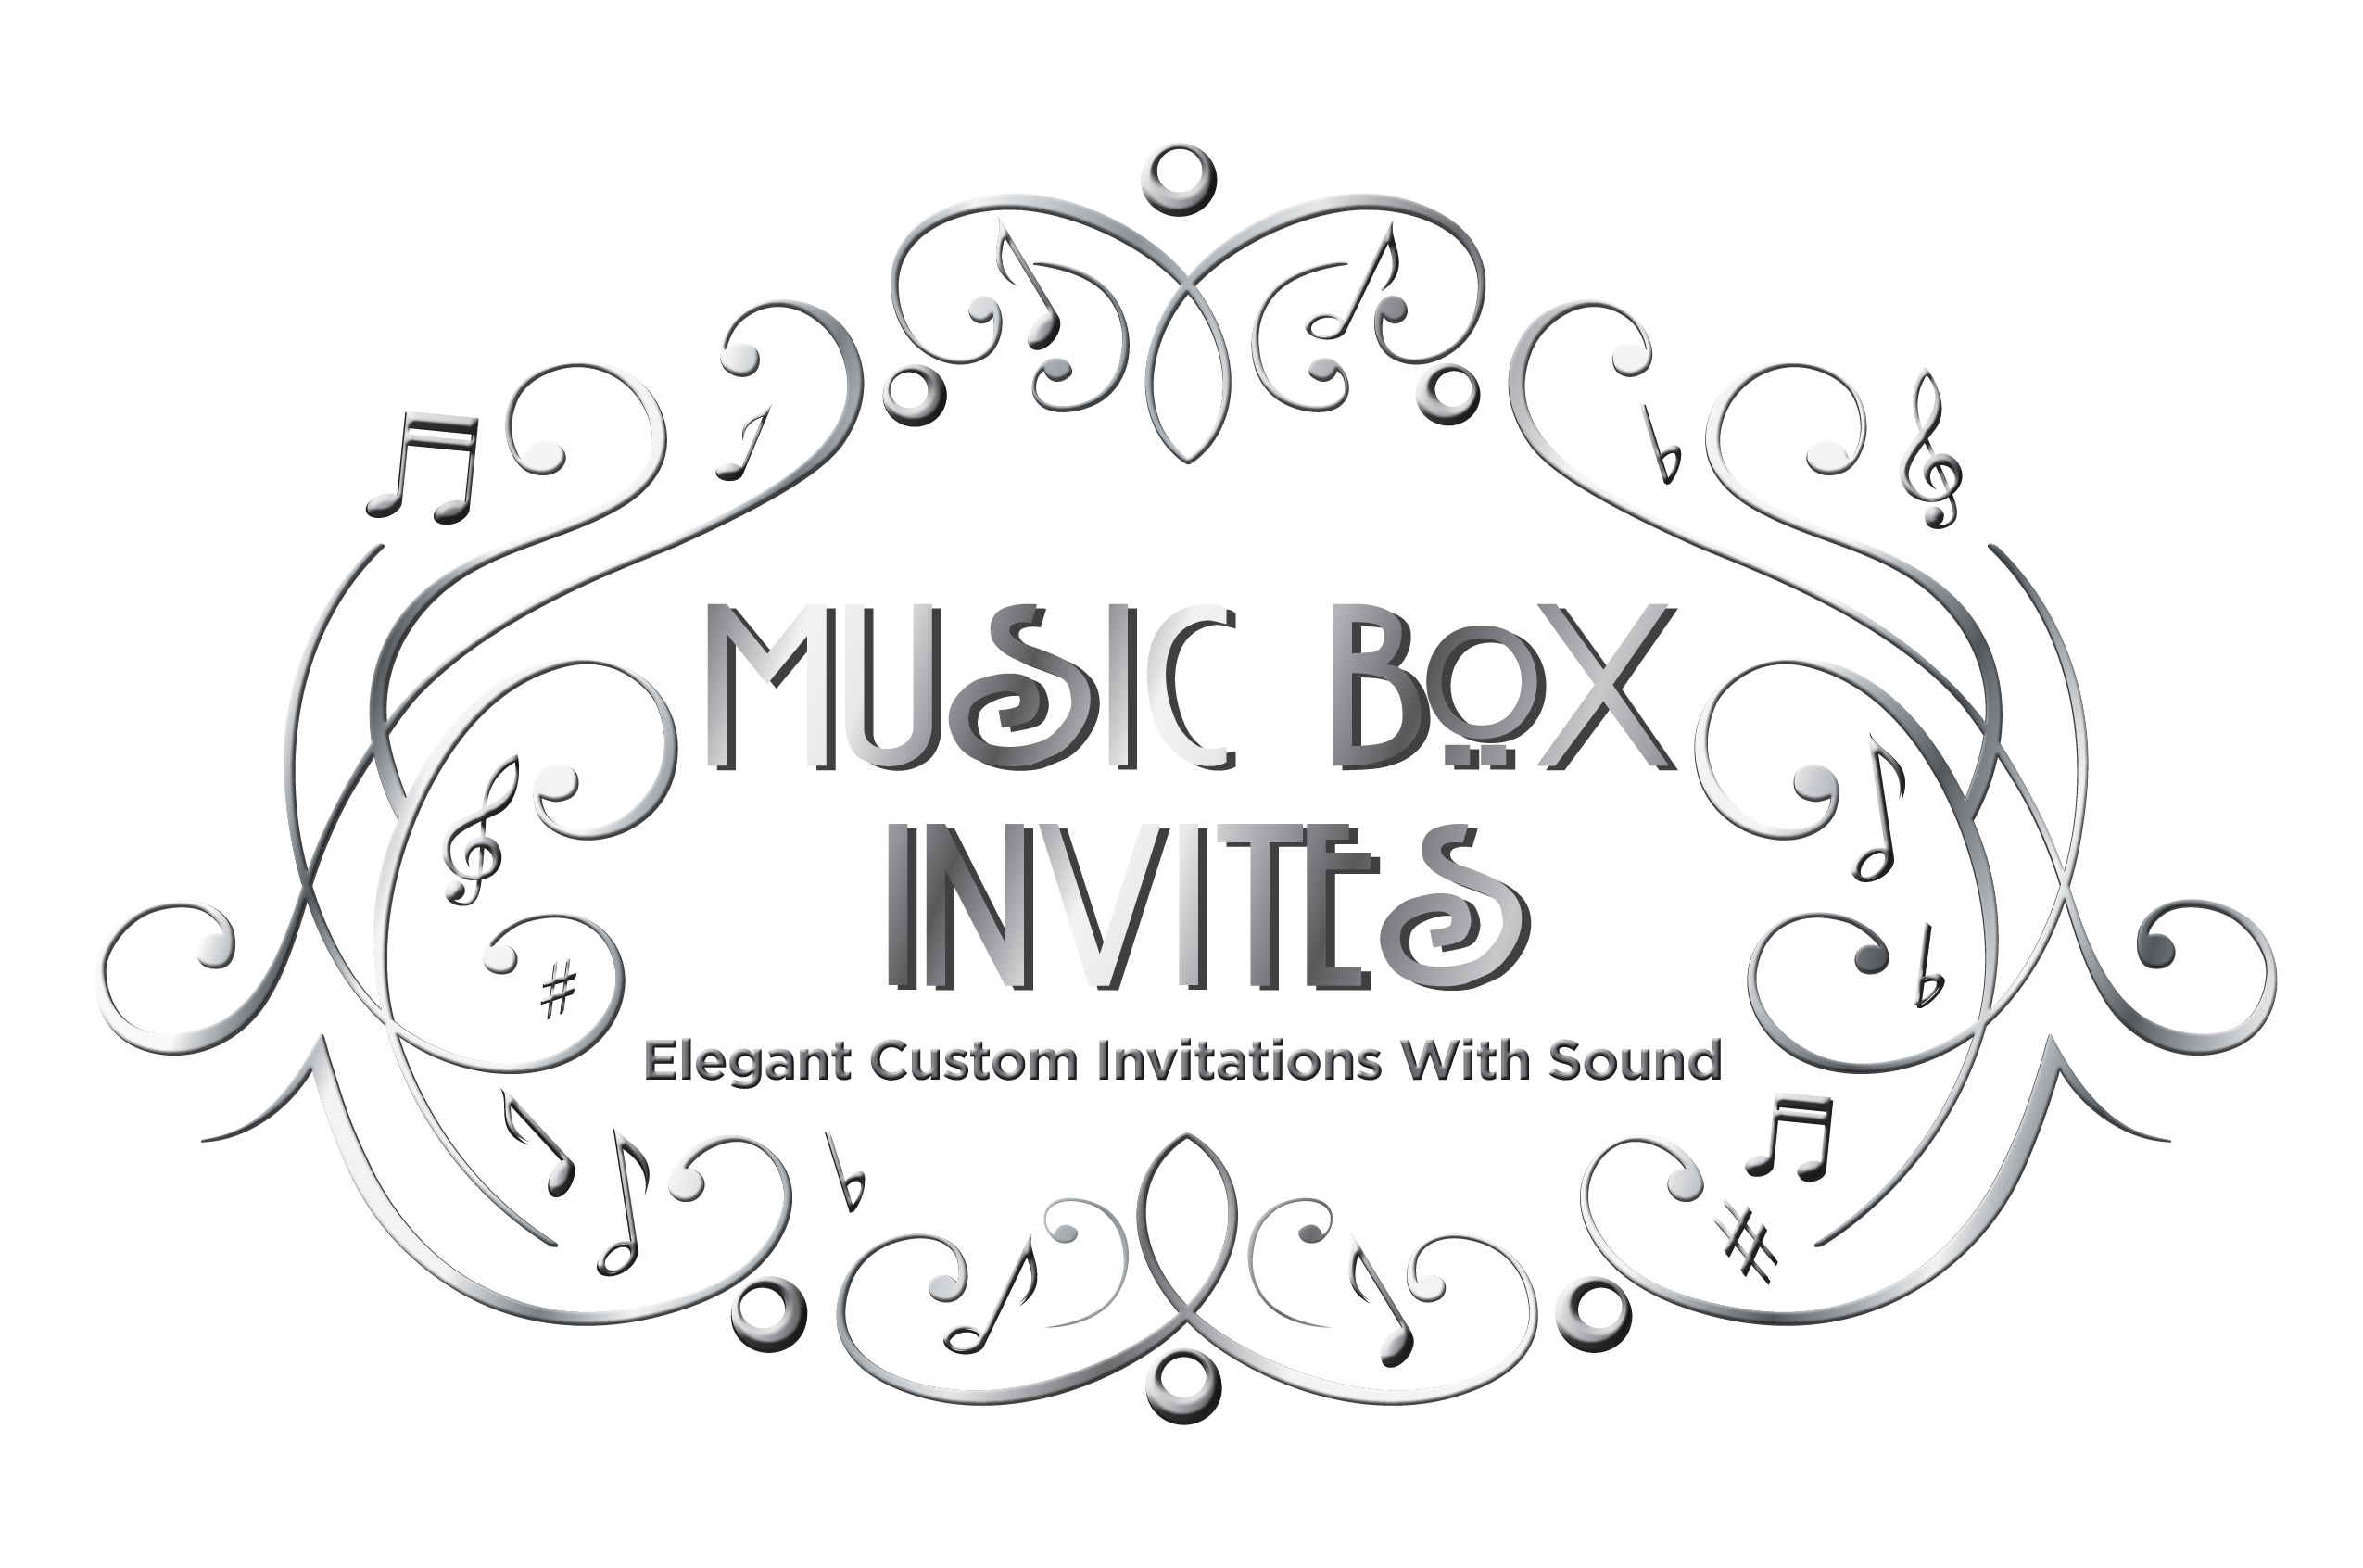 Music Box Invites - A Chair Affair, Inc.